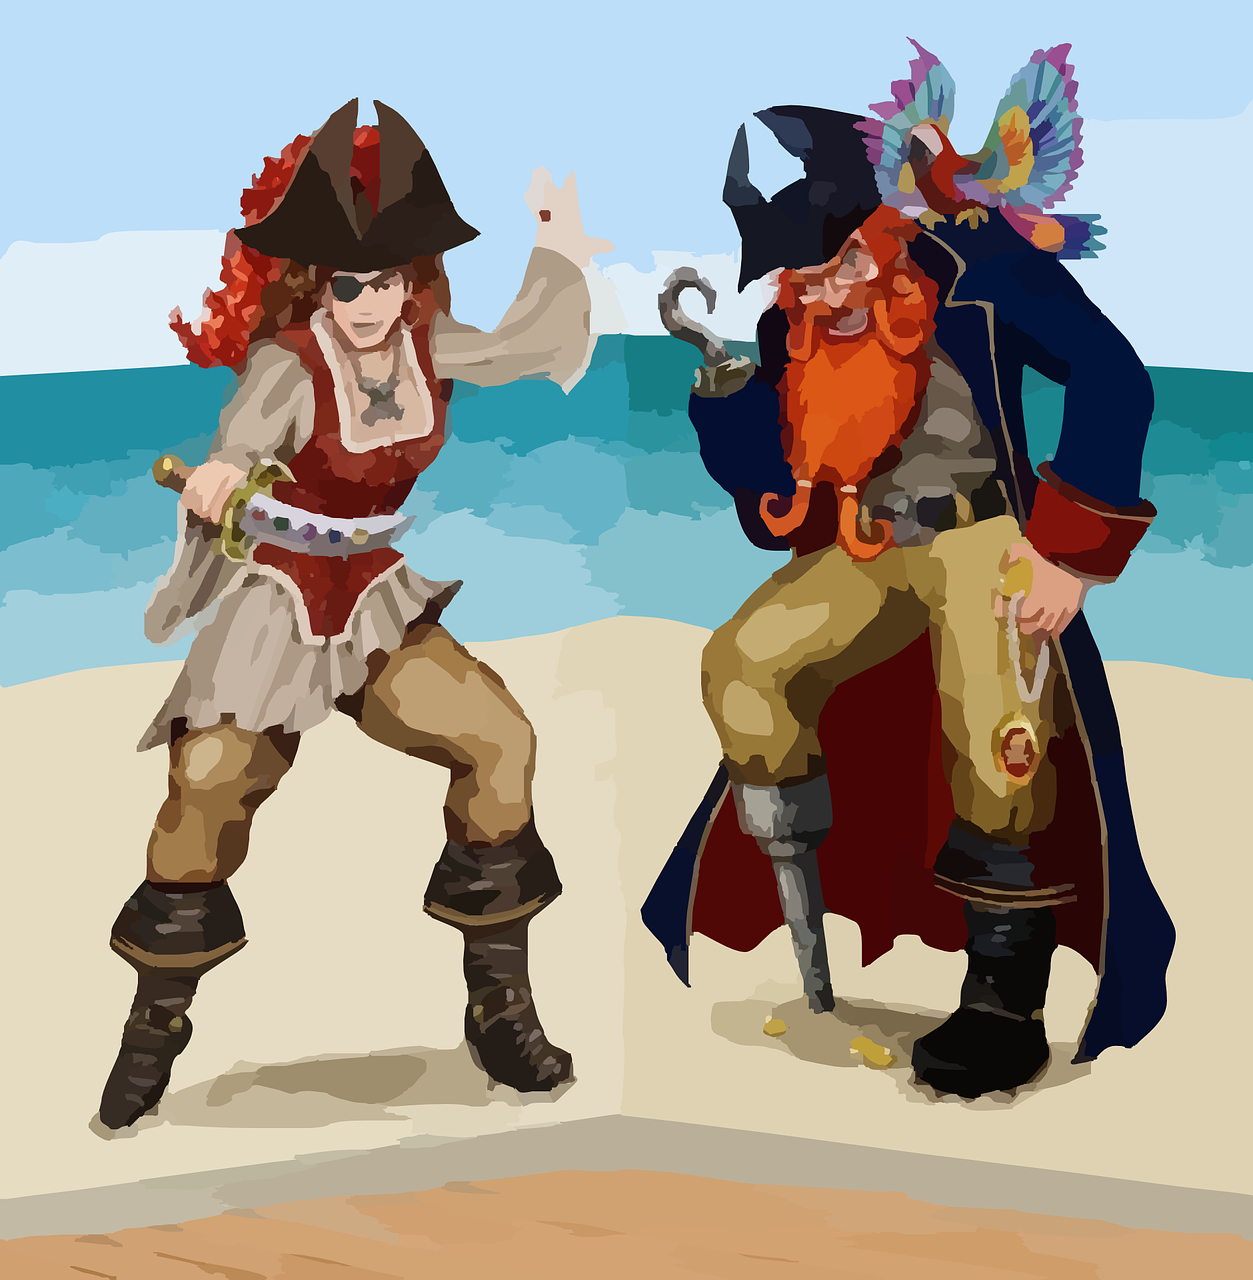 Drawings of a muscly redheaired female pirate on the left and a red-bearded peg-legged male pirate on the right, standing on a sandy beach with ocean in the background.